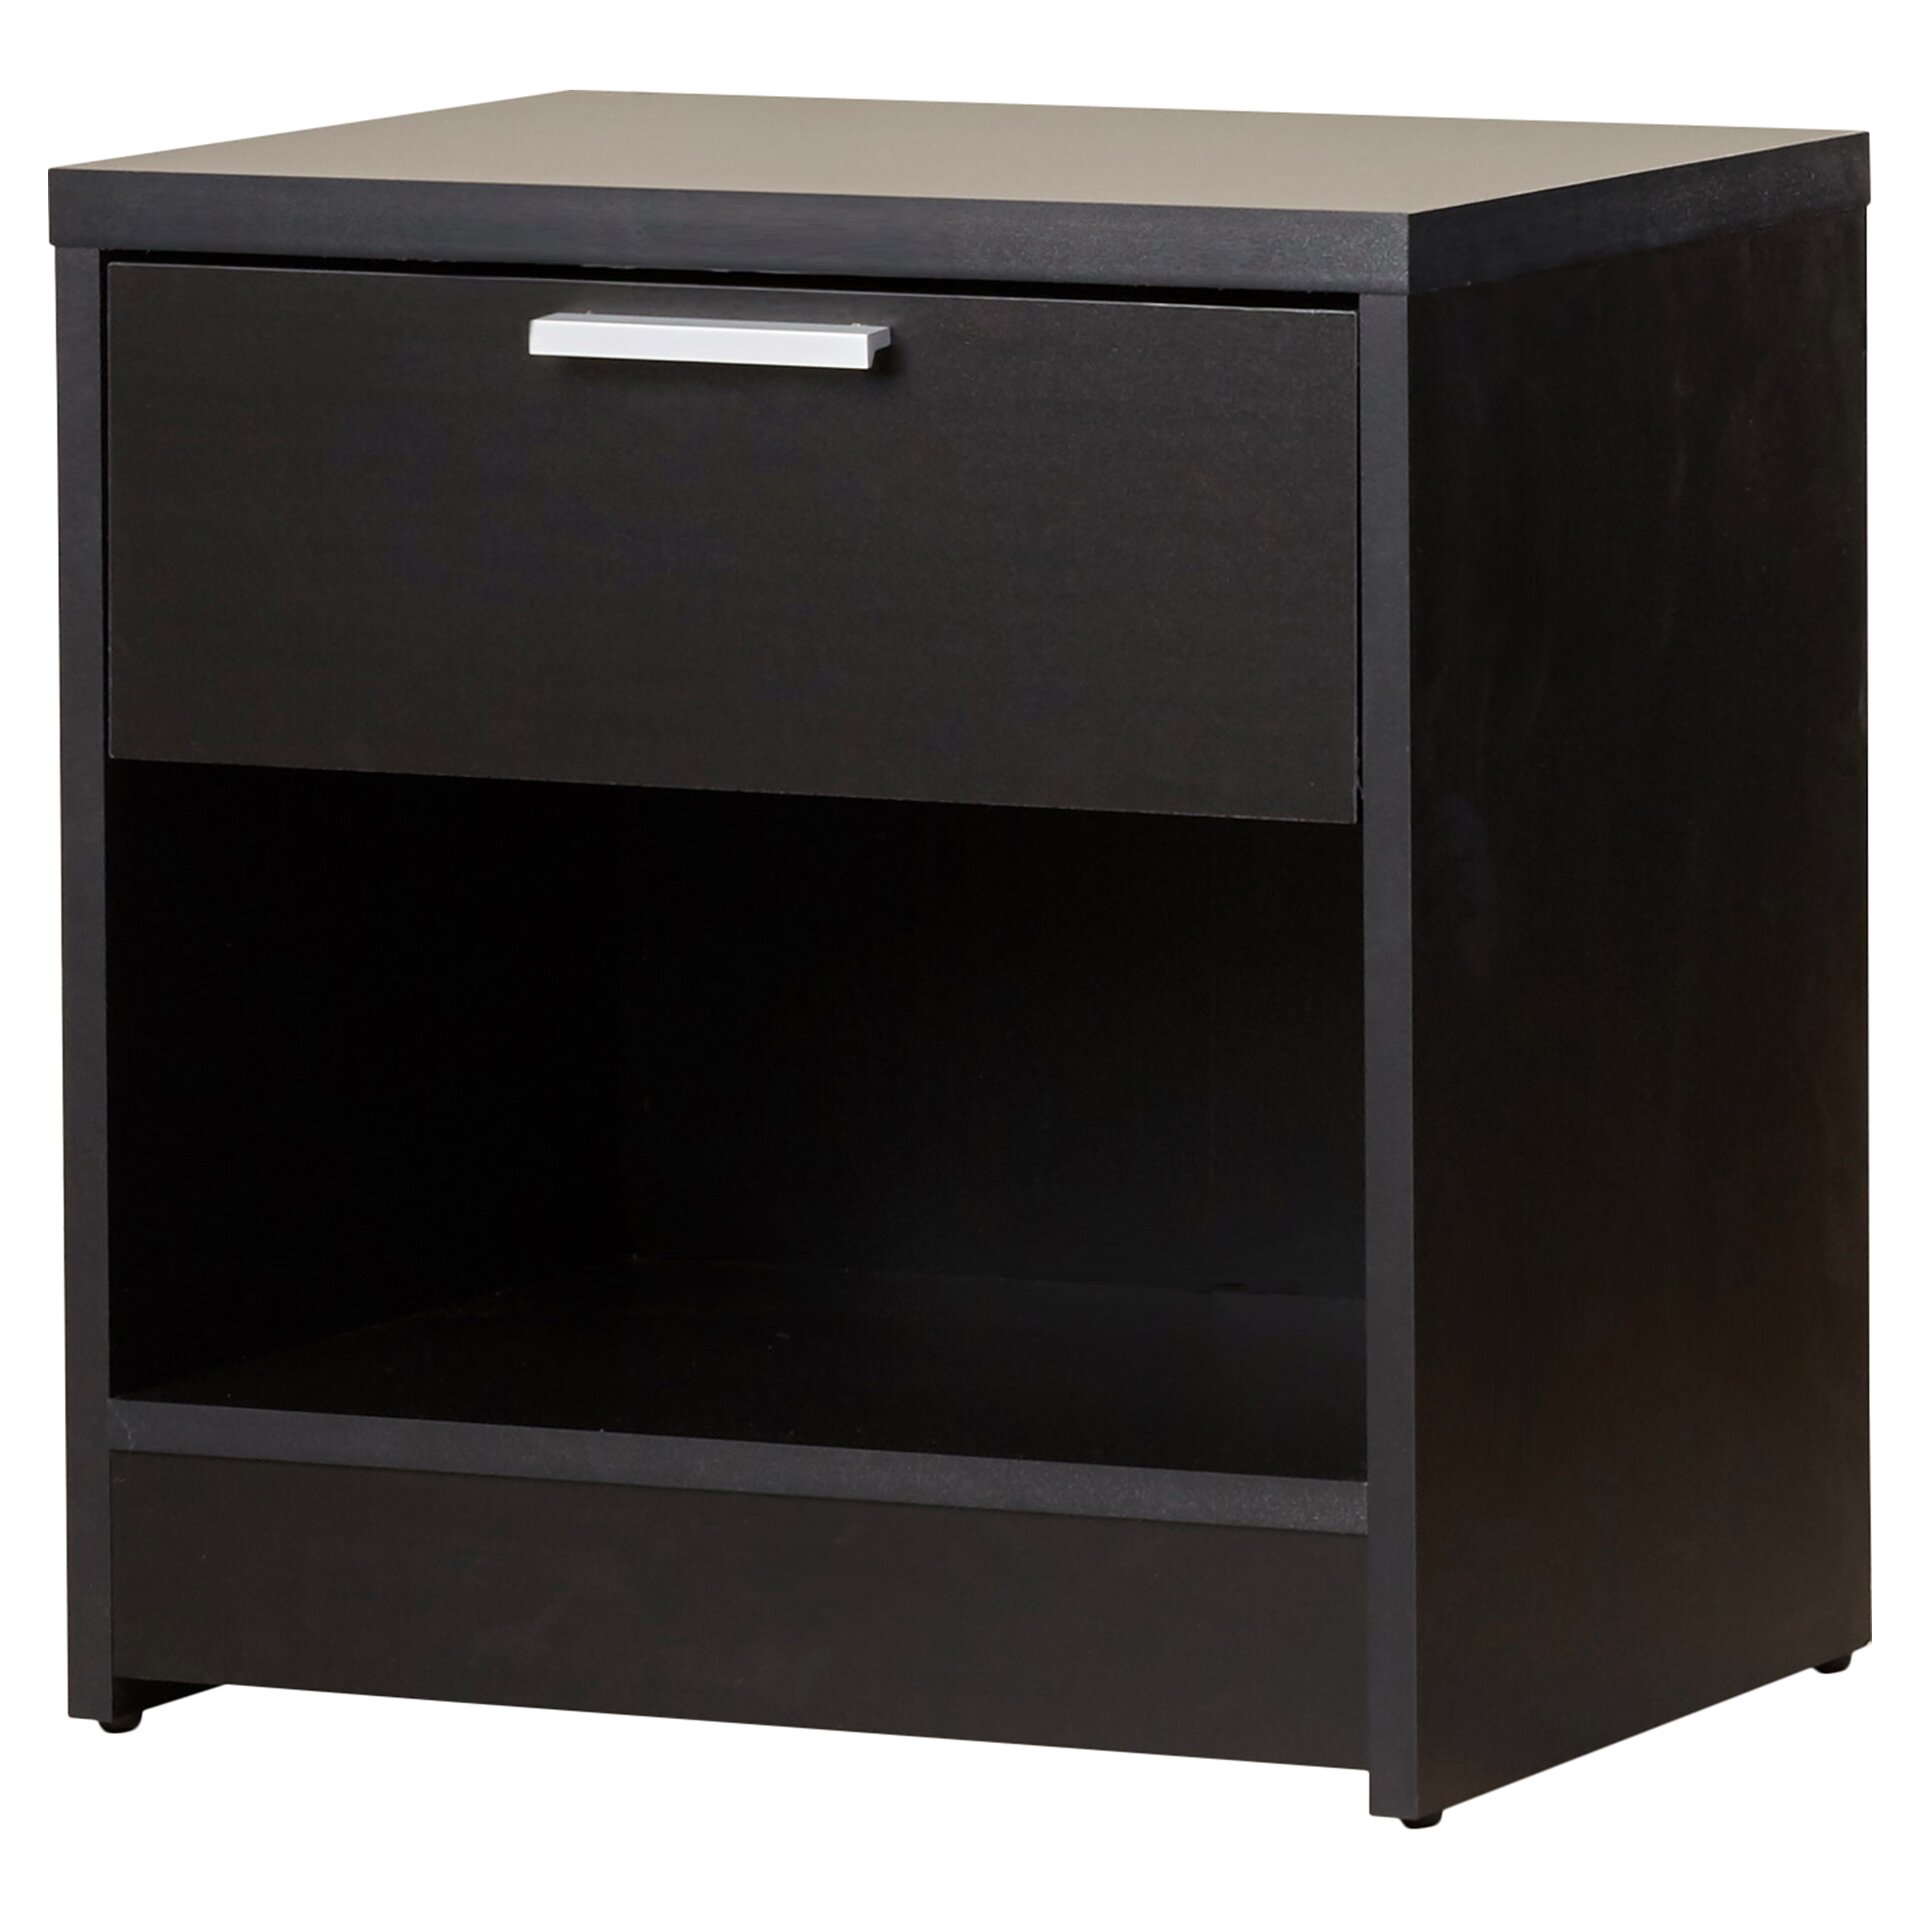 Corrigan Studio Miami 1 Drawer Nightstand Reviews Wayfair